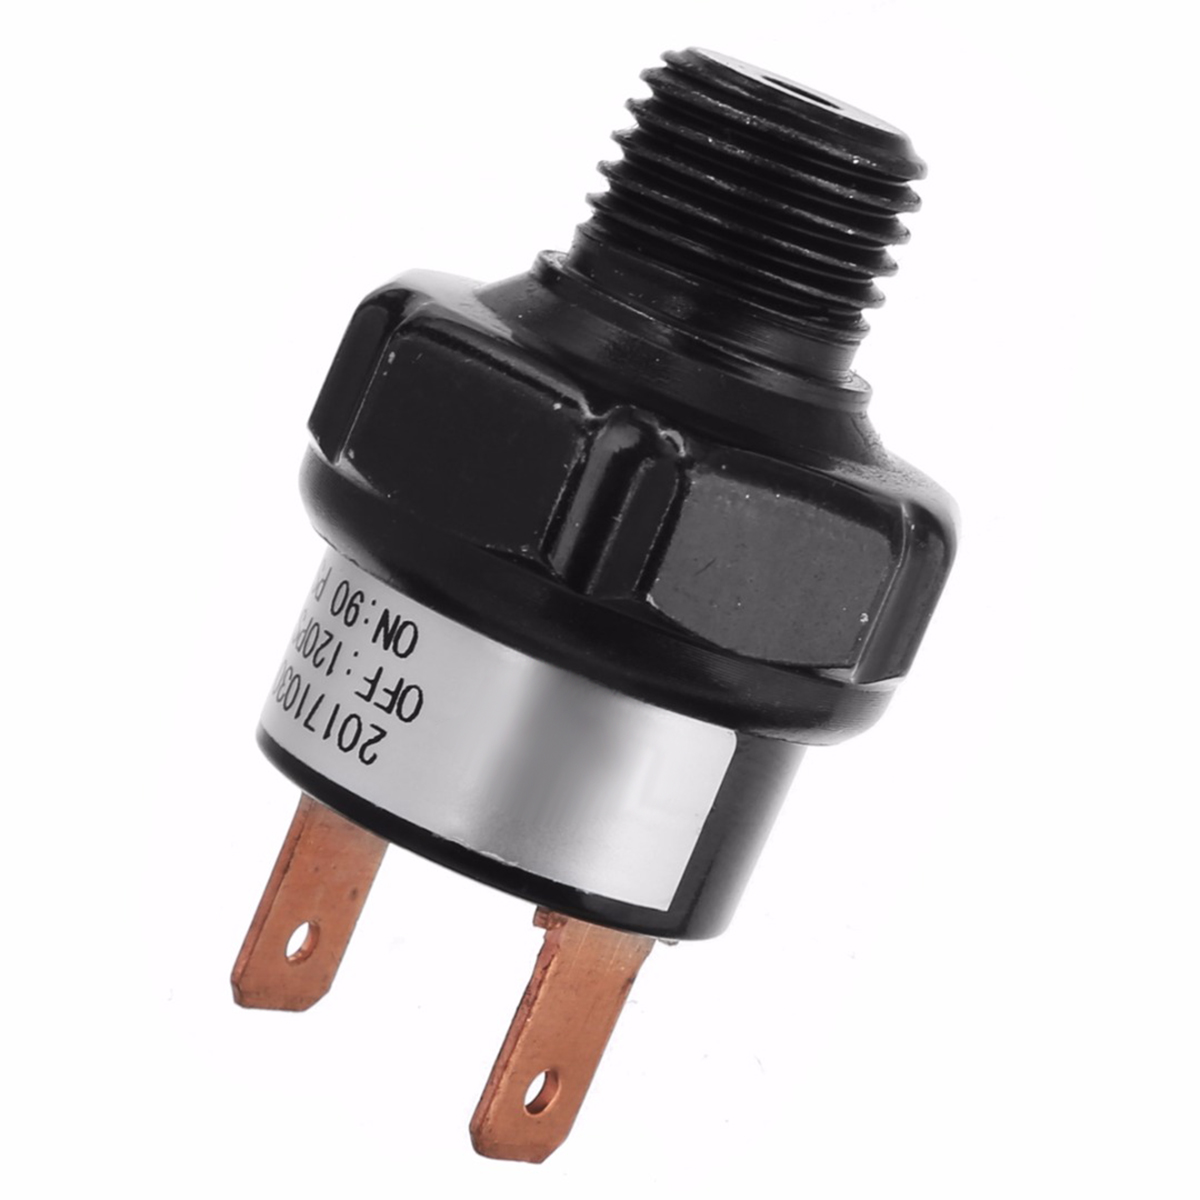 High Quality 1/4 NPT End Air Compressor Pressure Switch 90-120 PSI 12V Air Compressor Heavy Duty Control Switch Valve Mayitr 24a 16a 95 125psi manual dual pressure switch control valve for air compressor